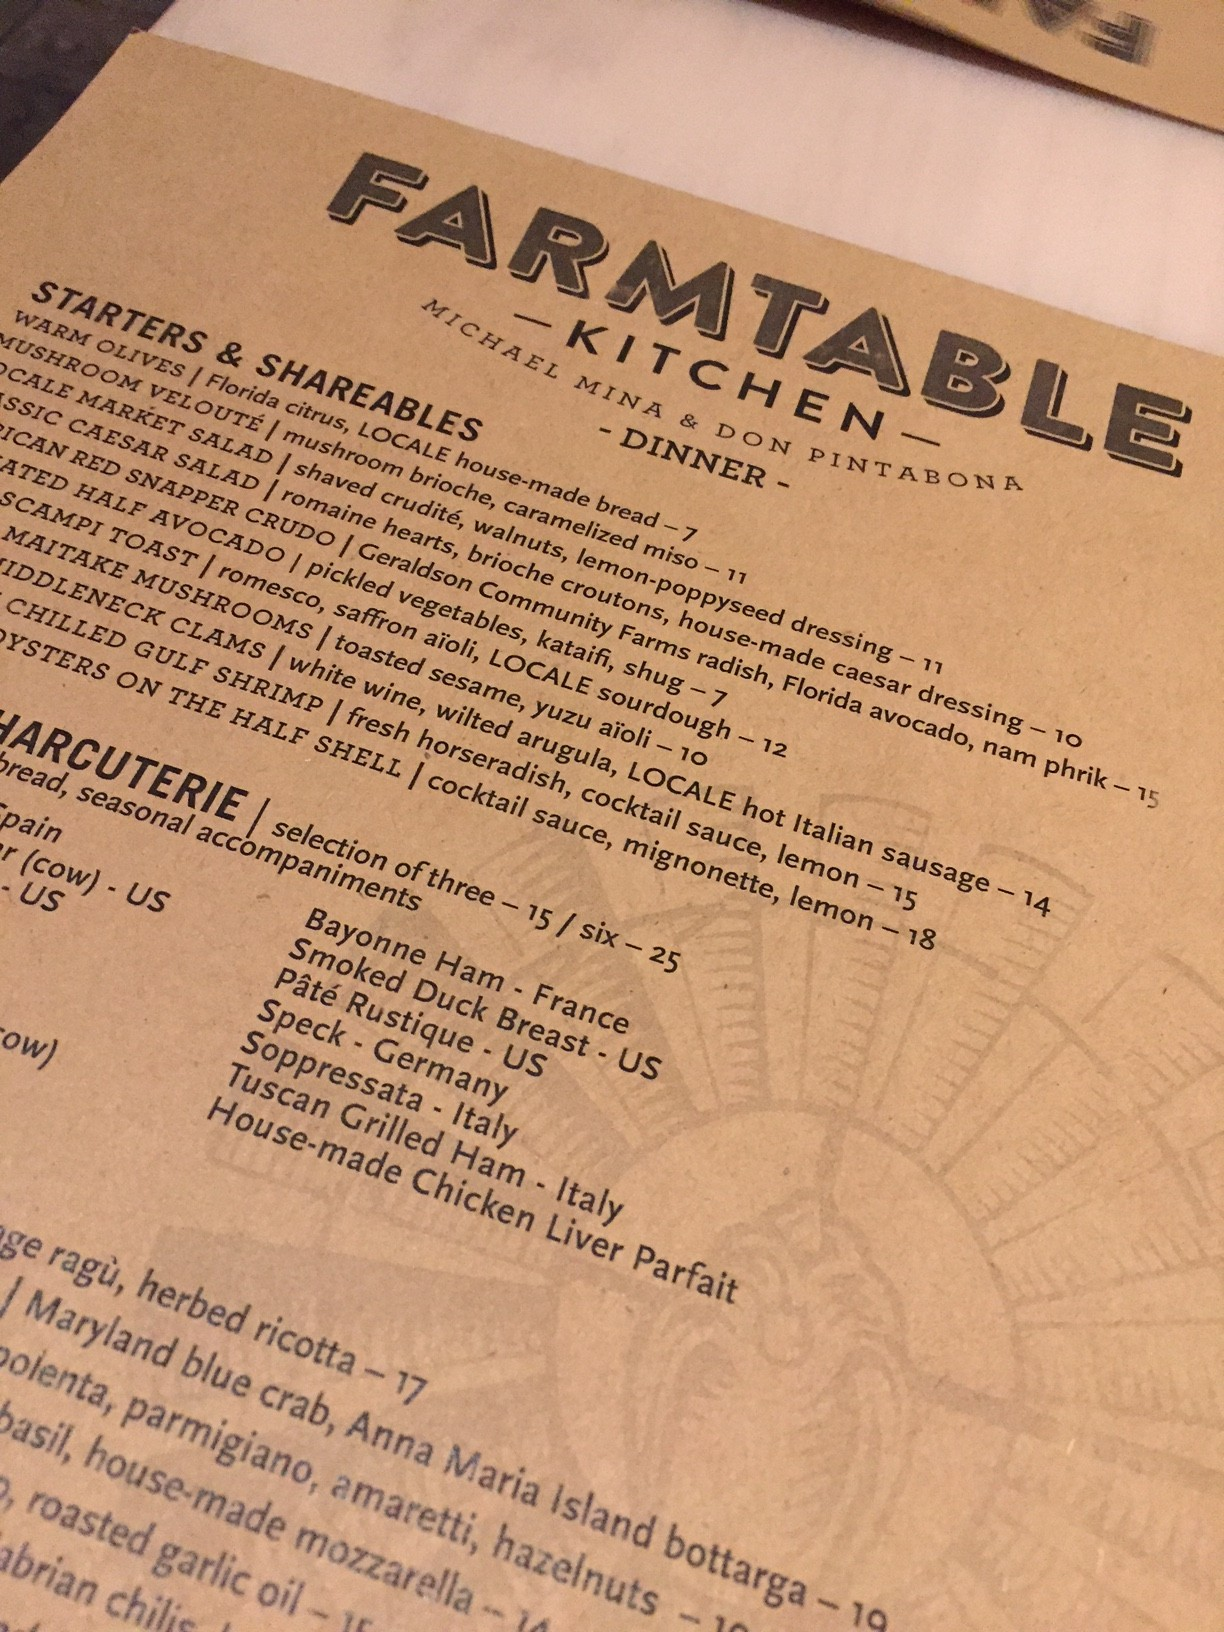 Farm Table Kitchen St Pete Menu